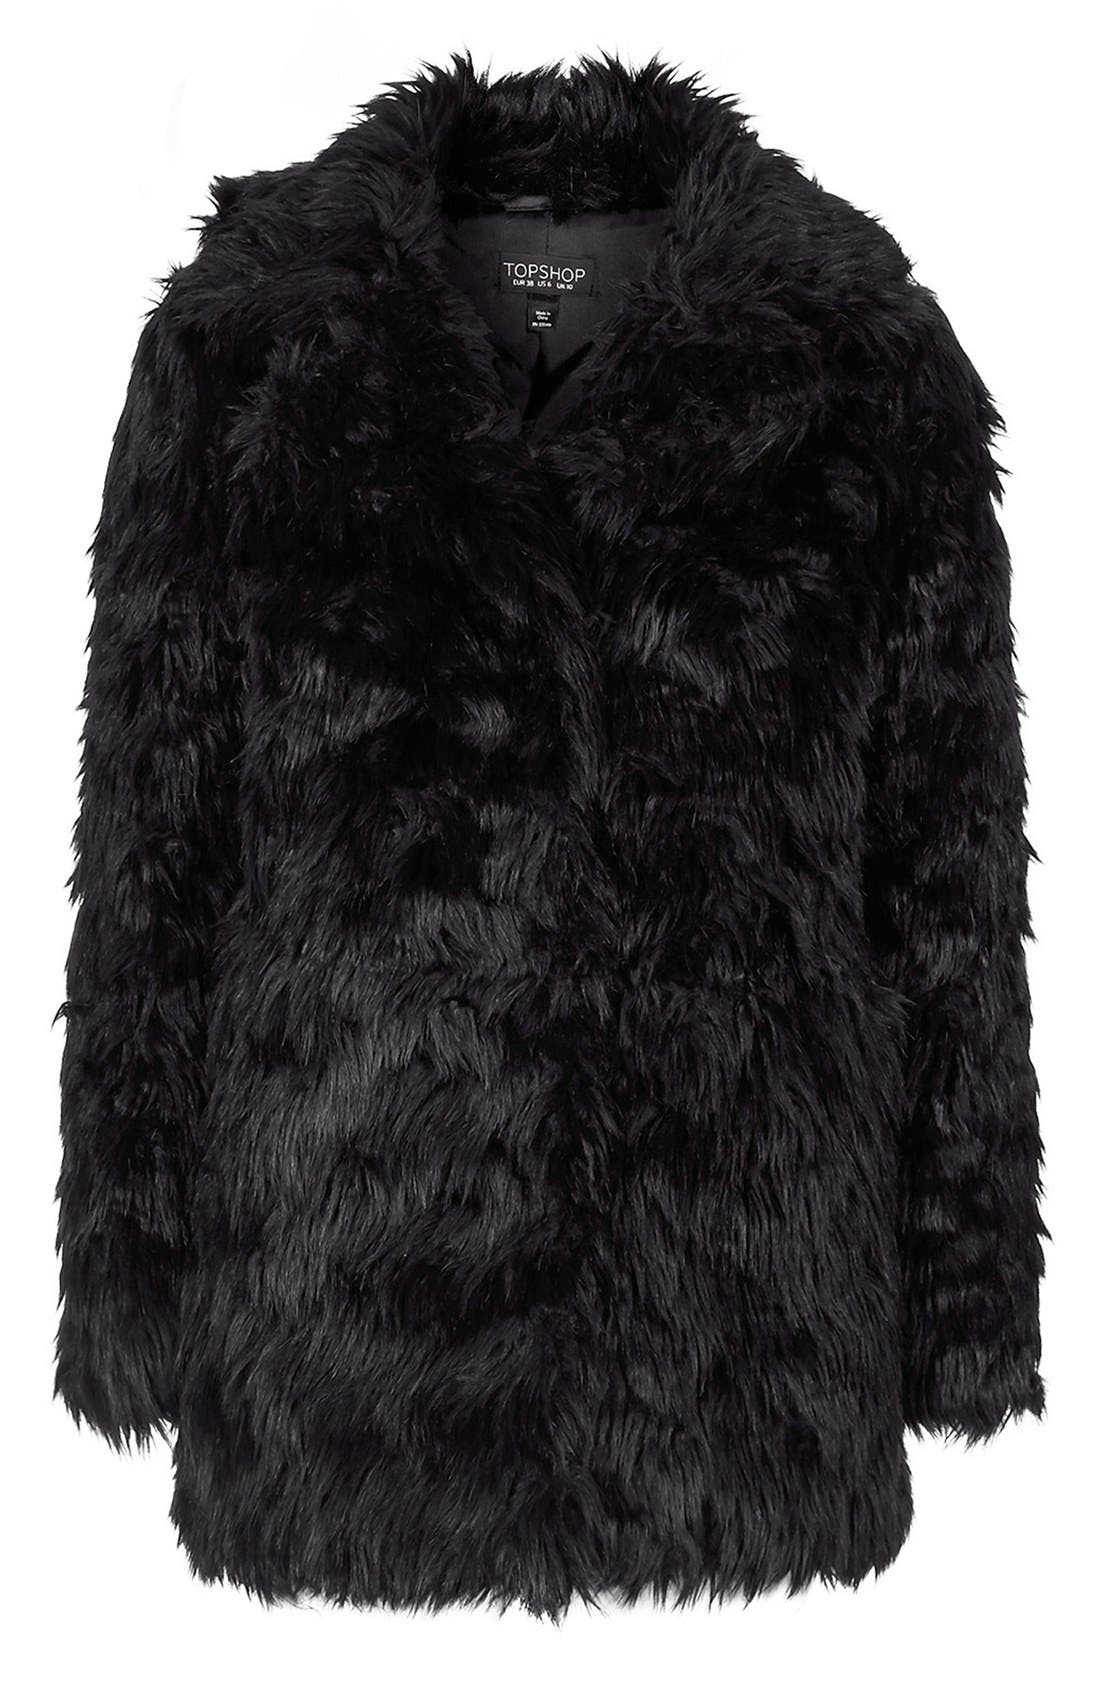 Urban Shaggy Faux Fur Coat,                             Alternate thumbnail 3, color,                             001